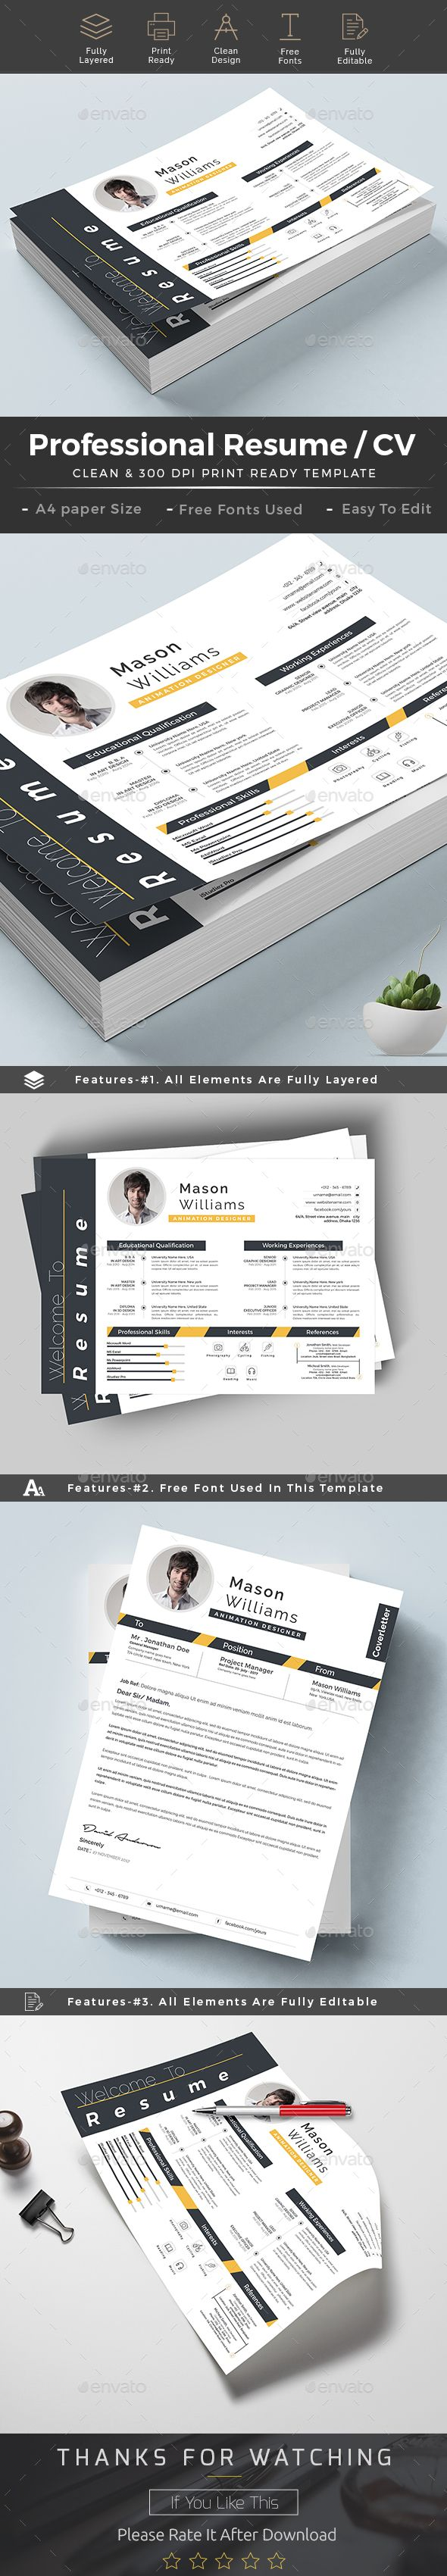 best images about resume design infographic resume